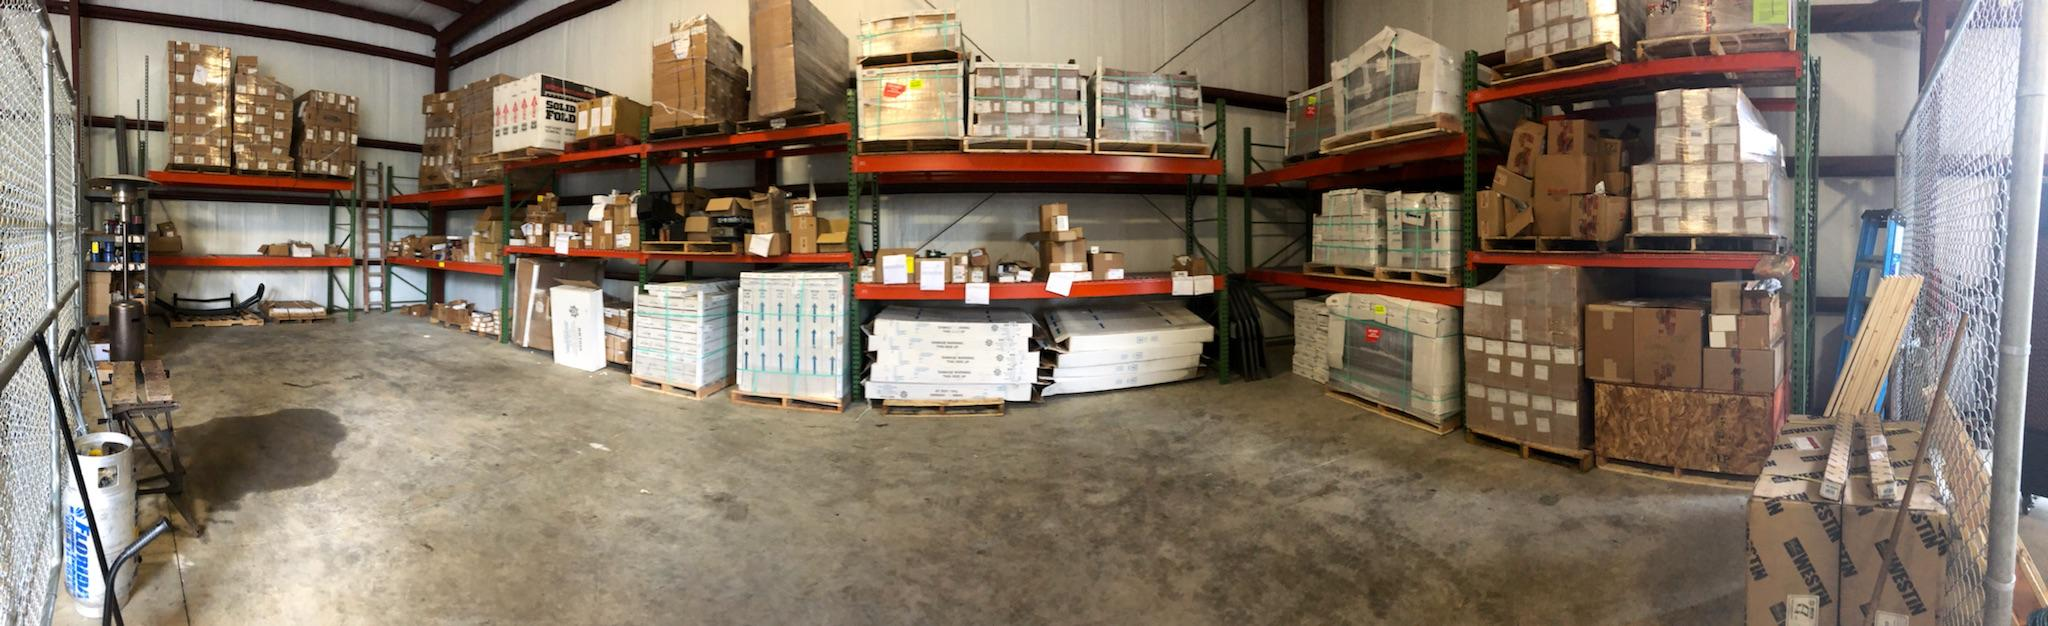 Dana Safety Supply Tallahassee Store